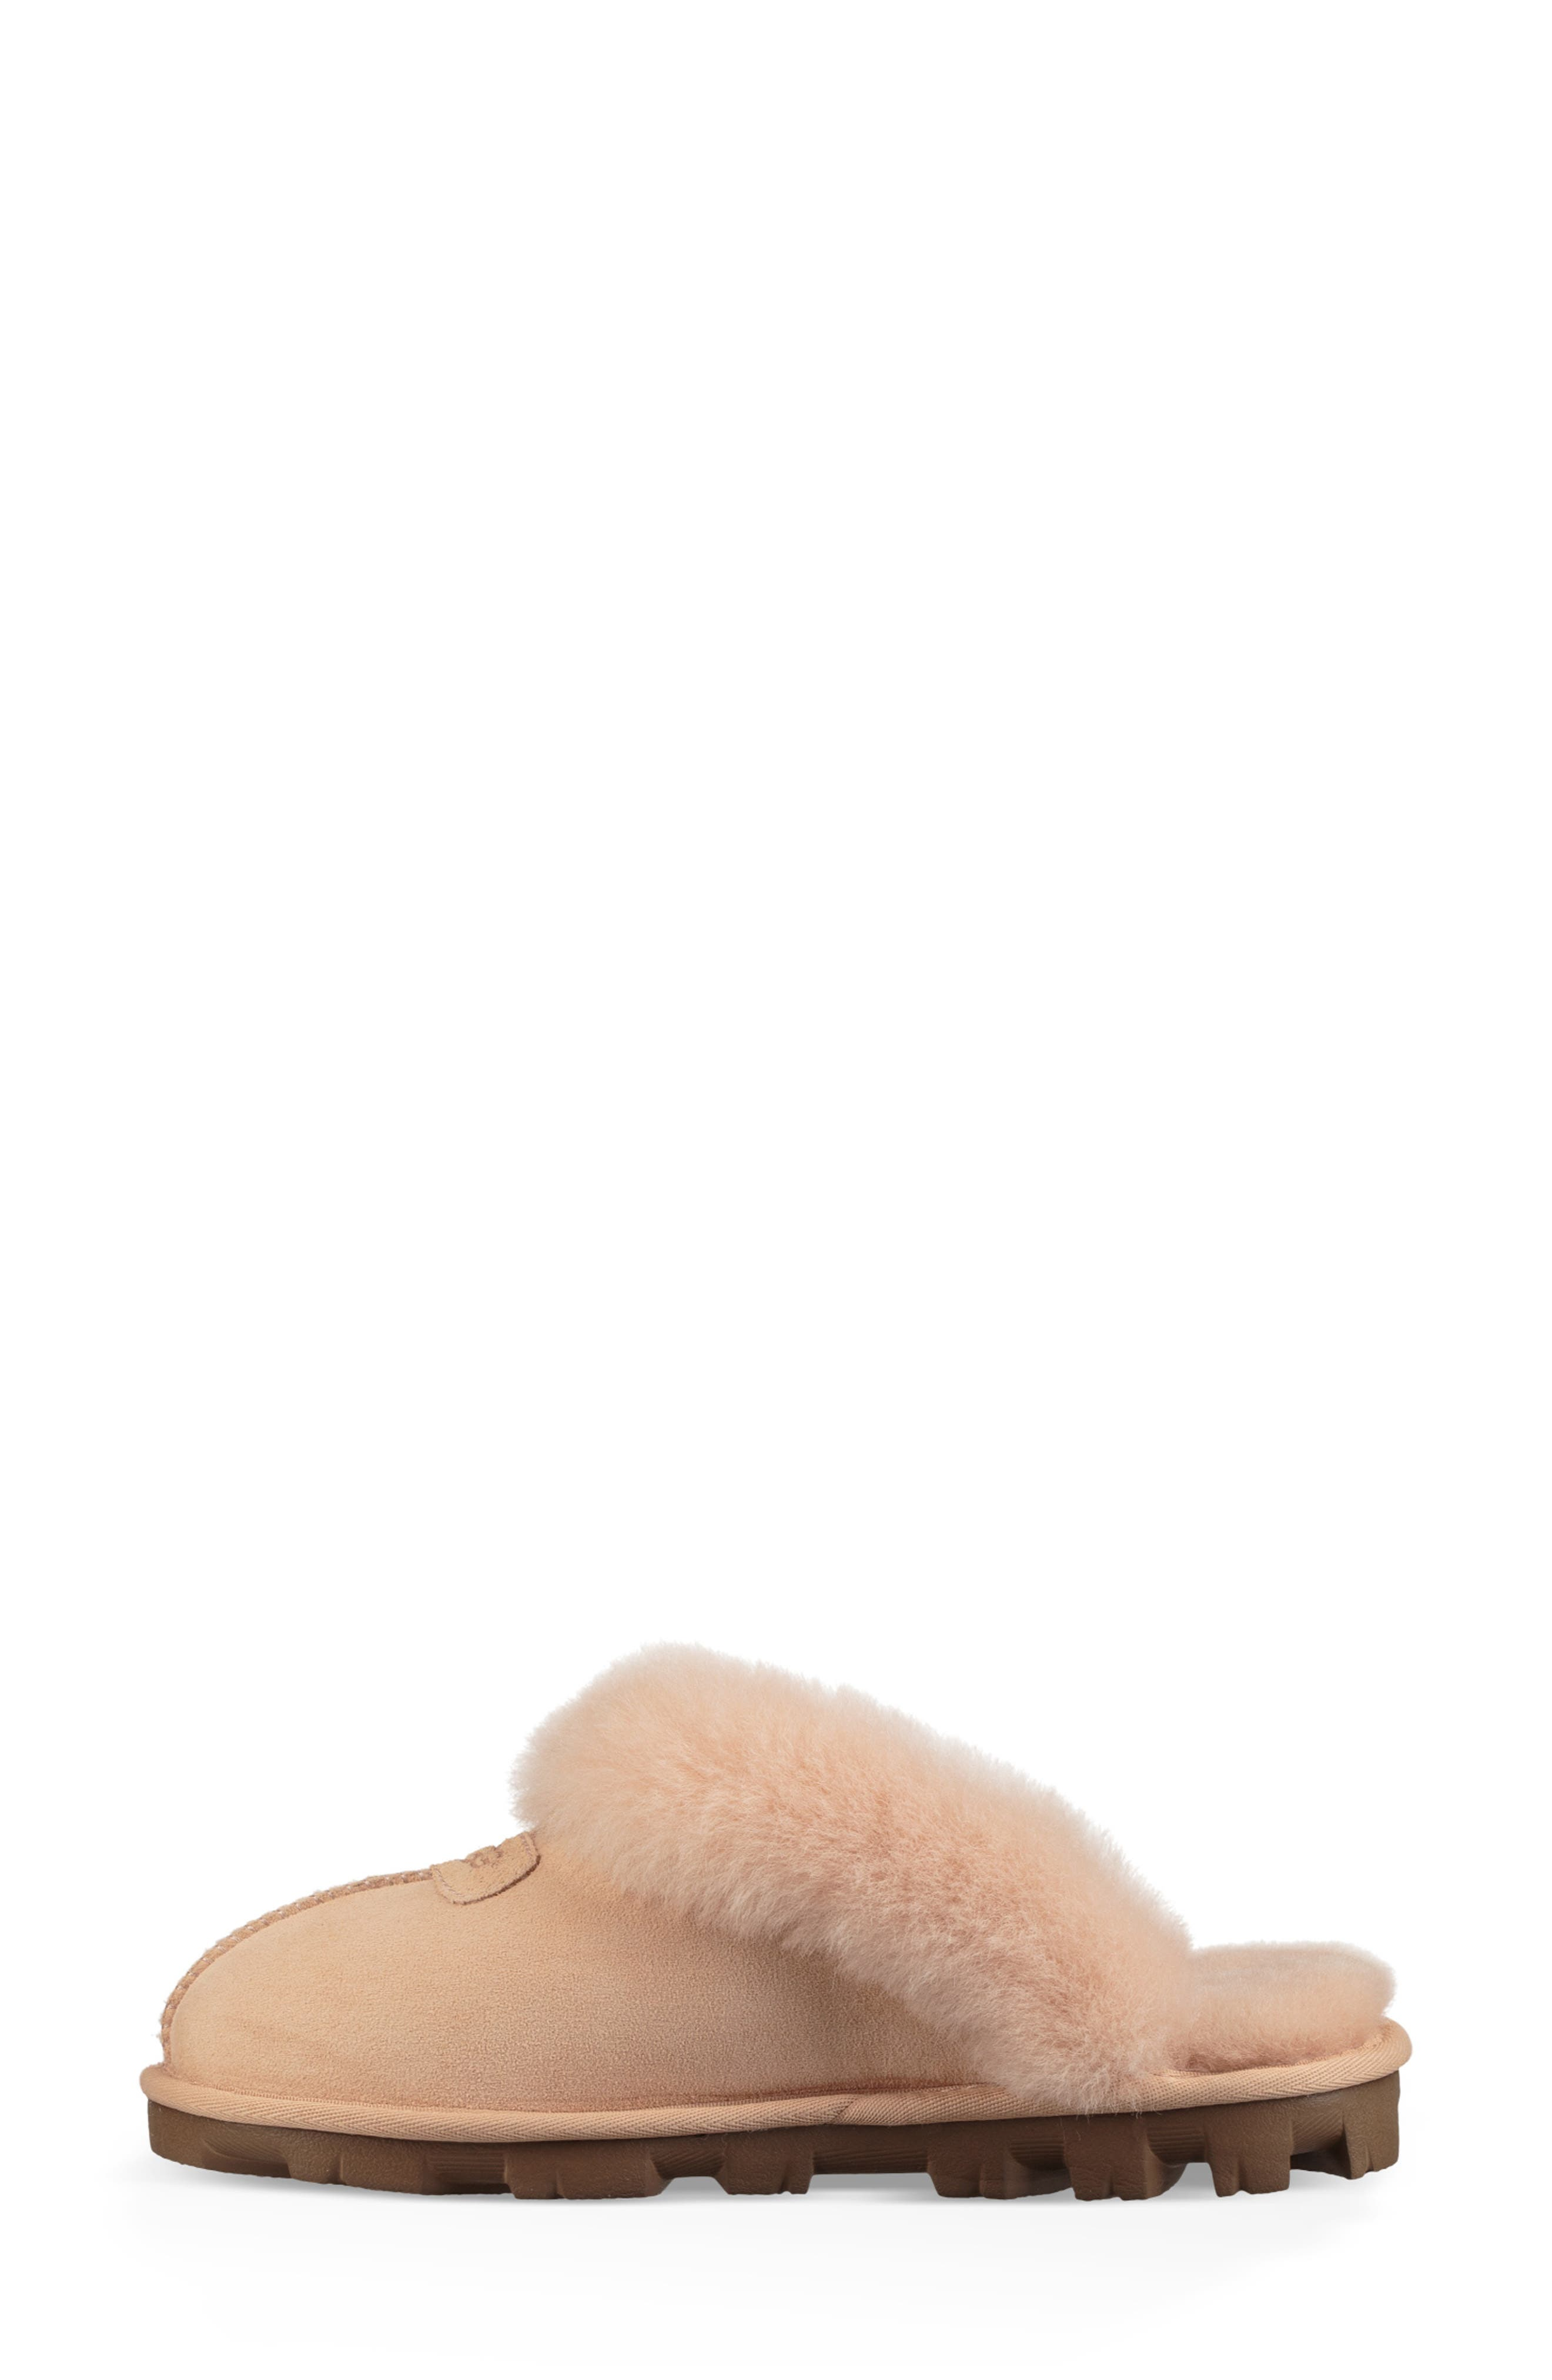 ,                             Genuine Shearling Slipper,                             Alternate thumbnail 88, color,                             652